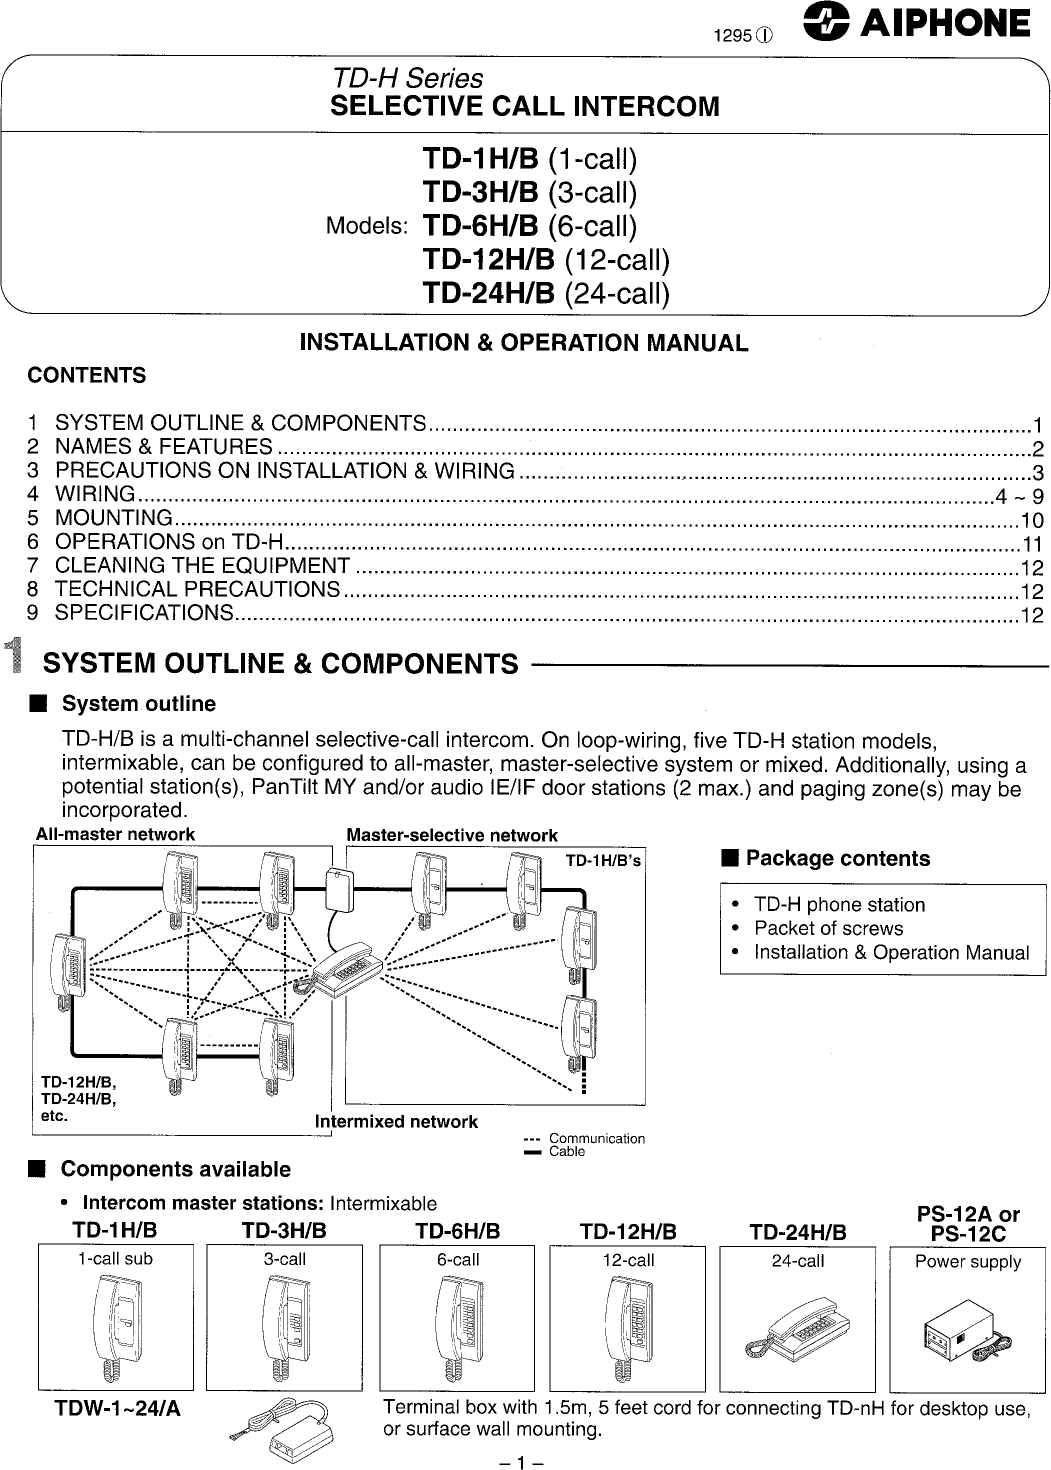 Aiphone Td 12h B Users Manual. Page 1 Of 12 Aiphone Aiphod12hbusers. Wiring. Aiphone Intercom Wiring Diagram Speakers At Scoala.co